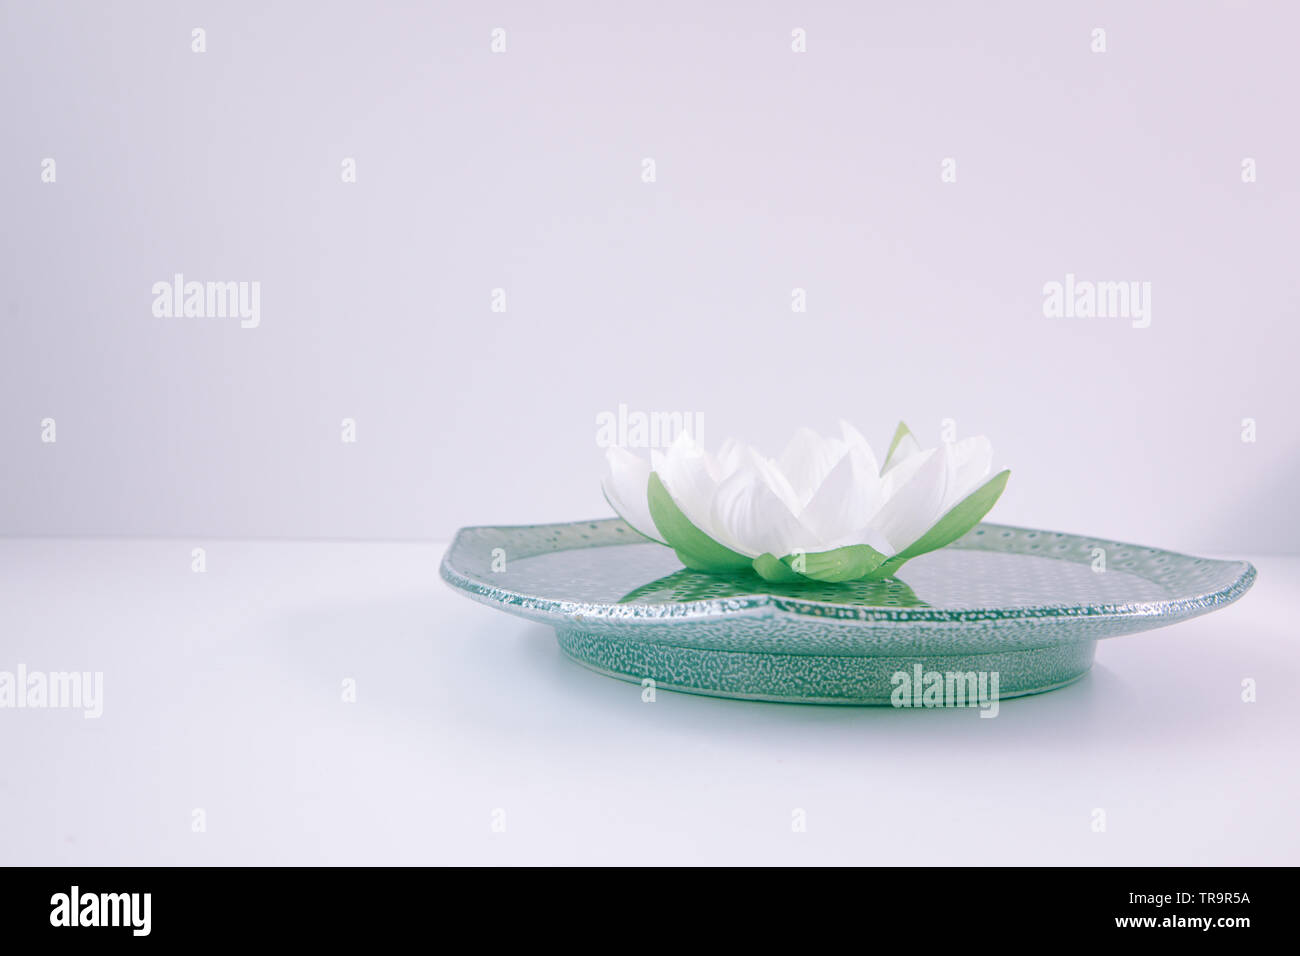 Flower Bowl With Lotus Flowers Stock Photos Flower Bowl With Lotus